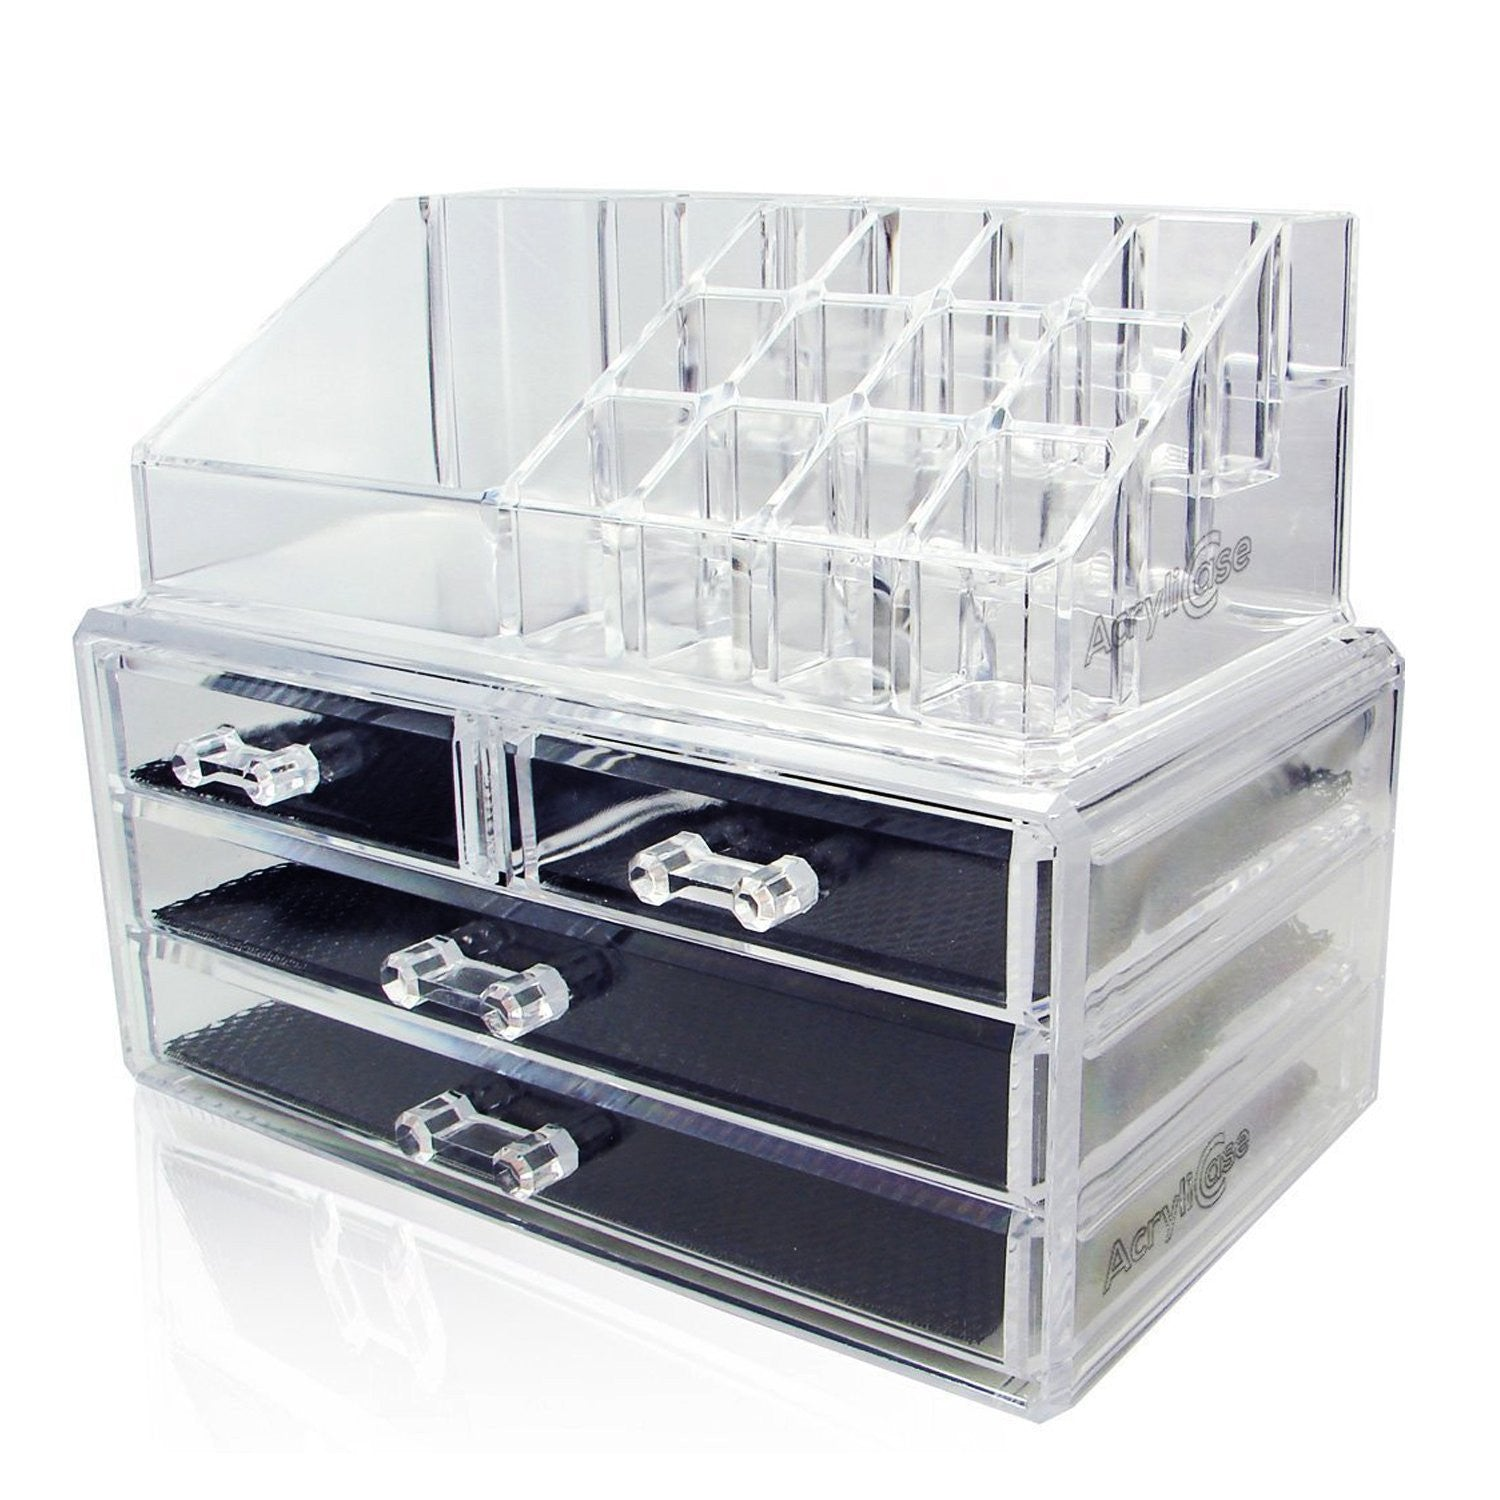 Acrylic Makeup Organizer Cosmetic Jewerly Display Box 2 Piece Set by AcryliCase